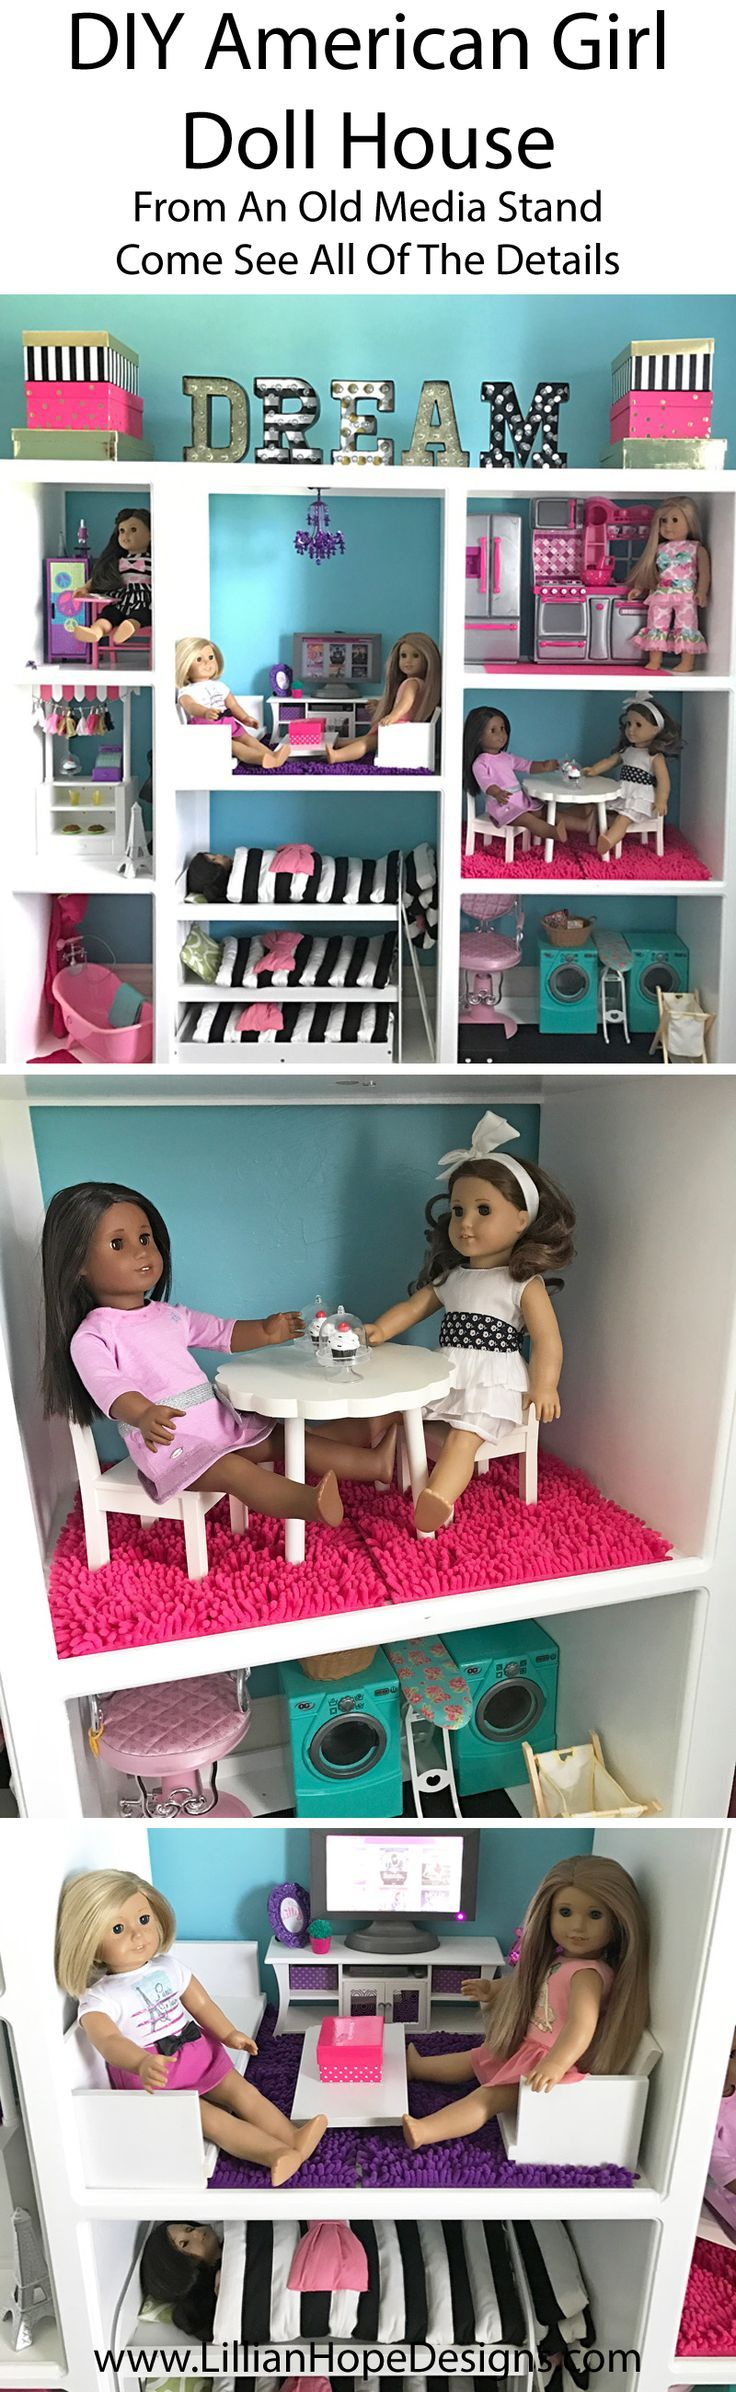 How To Make A Diy American Girl Doll House For An Affordable Price